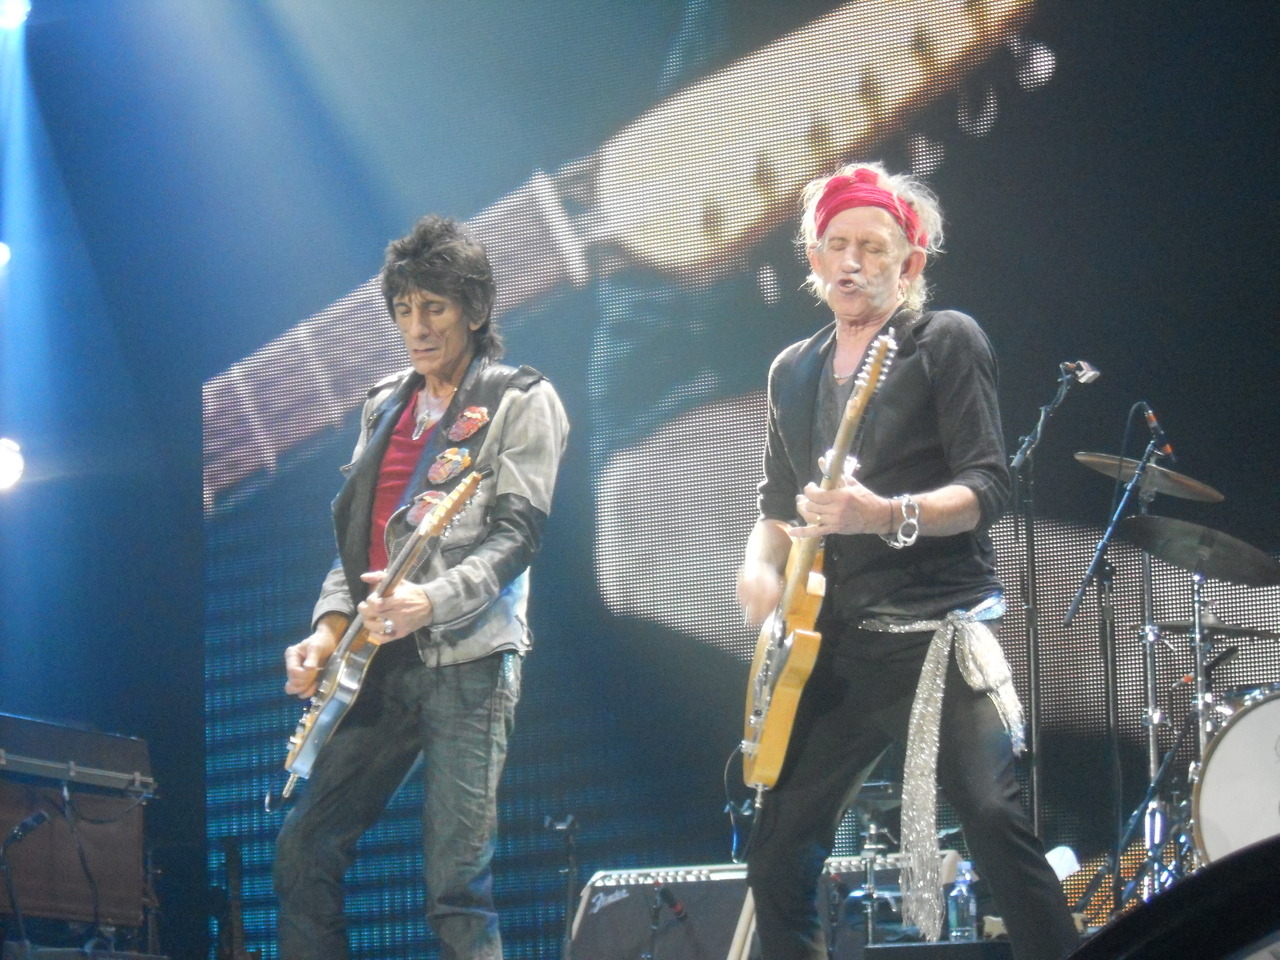 CE 25 NOVEMBRE 2012 A O2 ARENA, LONDRES, RON WOOD et KEITH RICHARDS trudiesledge:  Ronnie Wood & Keith Richards 25th November 2012 The O2, London